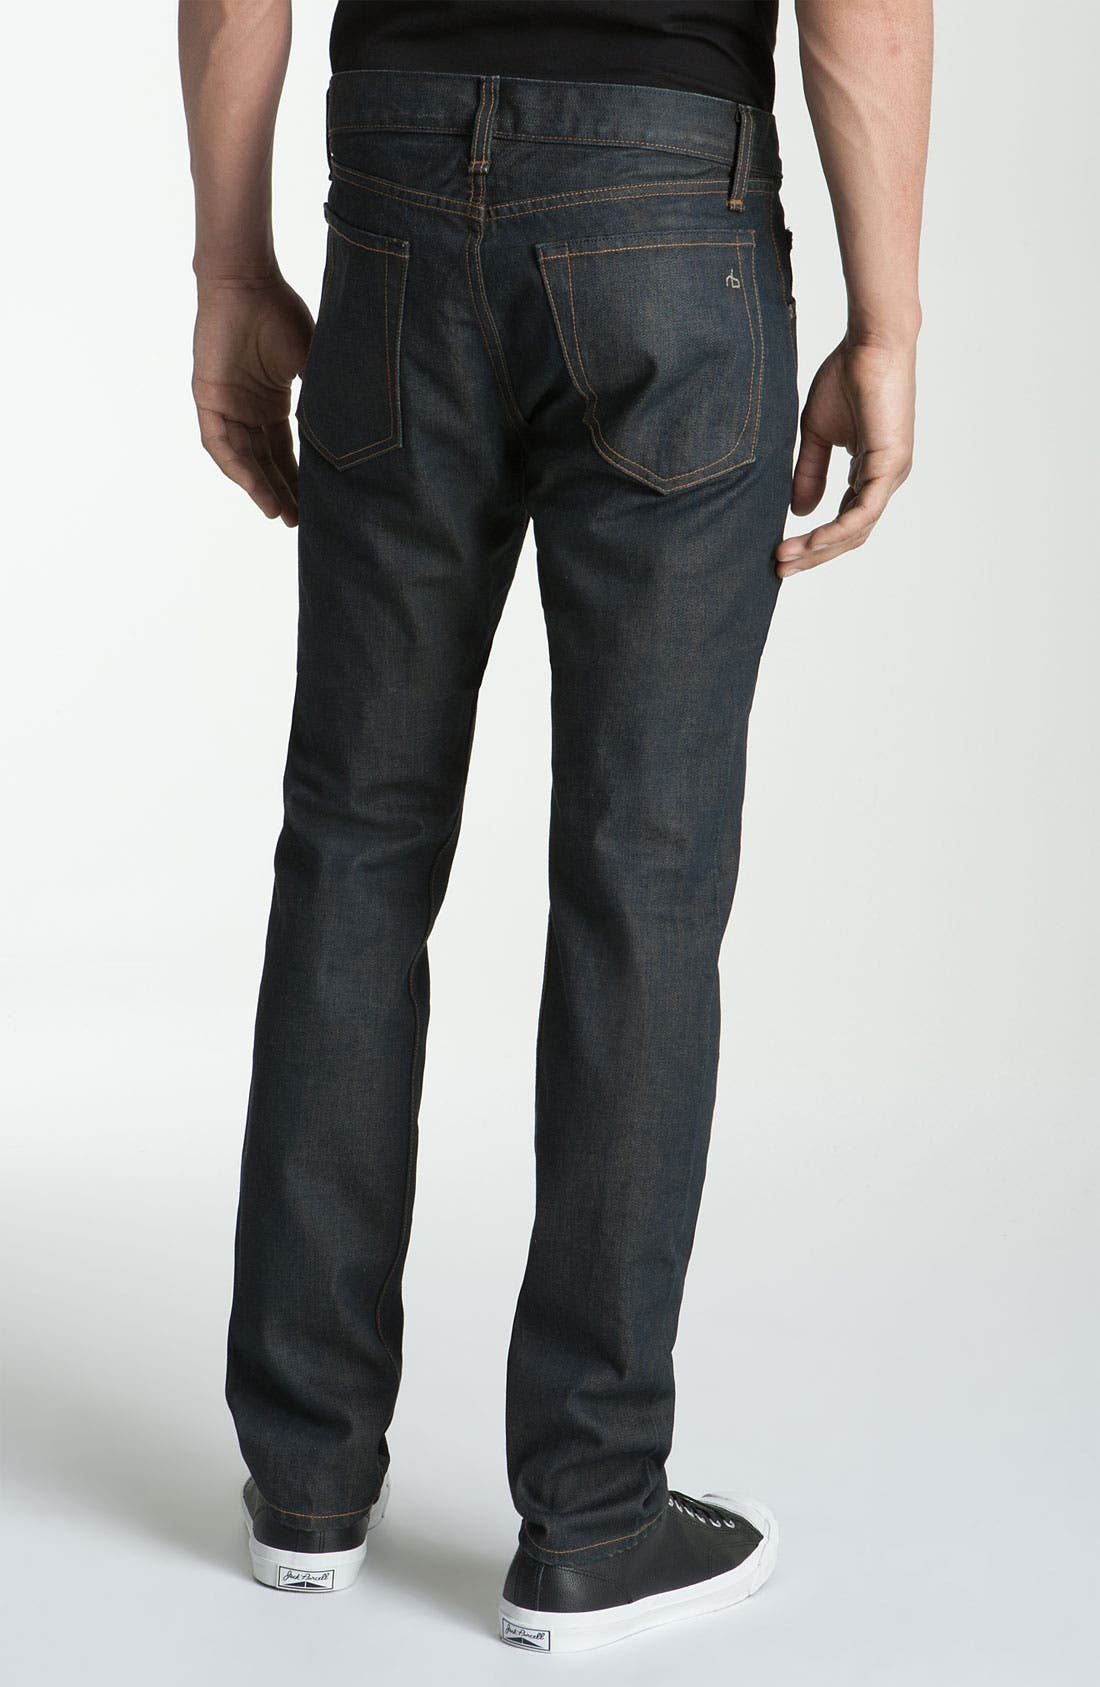 Main Image - rag & bone 'RB15X' Slim Straight Jeans (Olive One Year Wash)